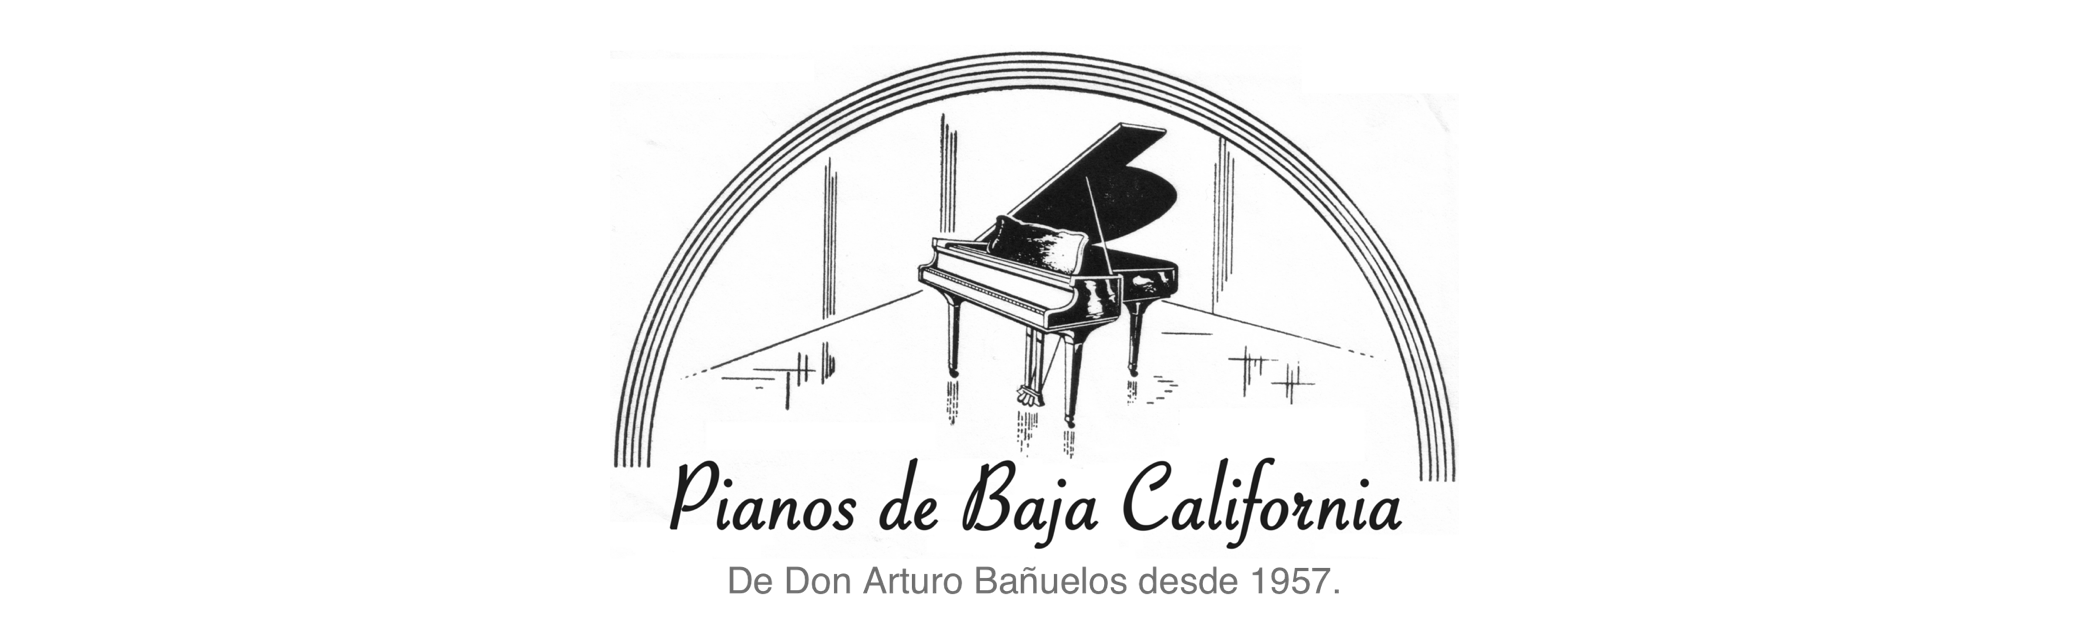 Pianos de Baja California